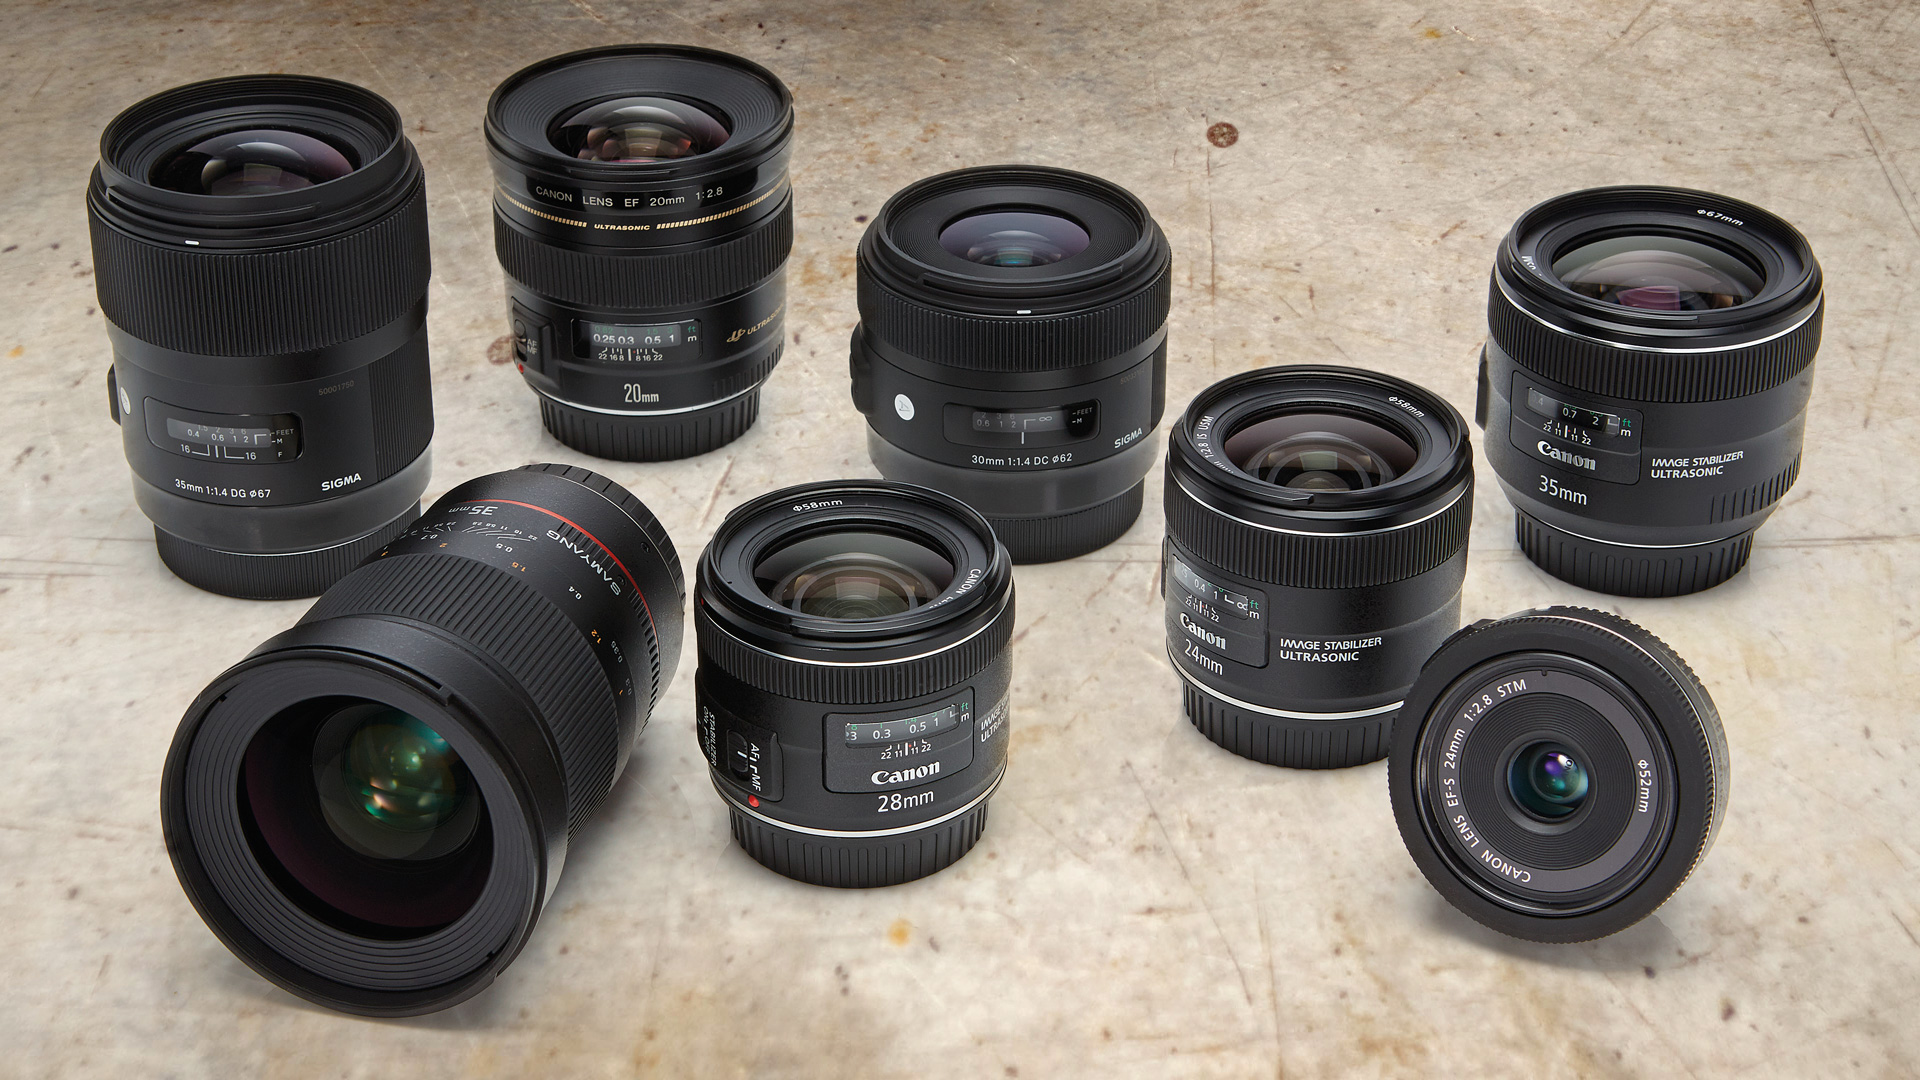 8 best wide-angle prime lenses for Canon DSLRs | TechRadar